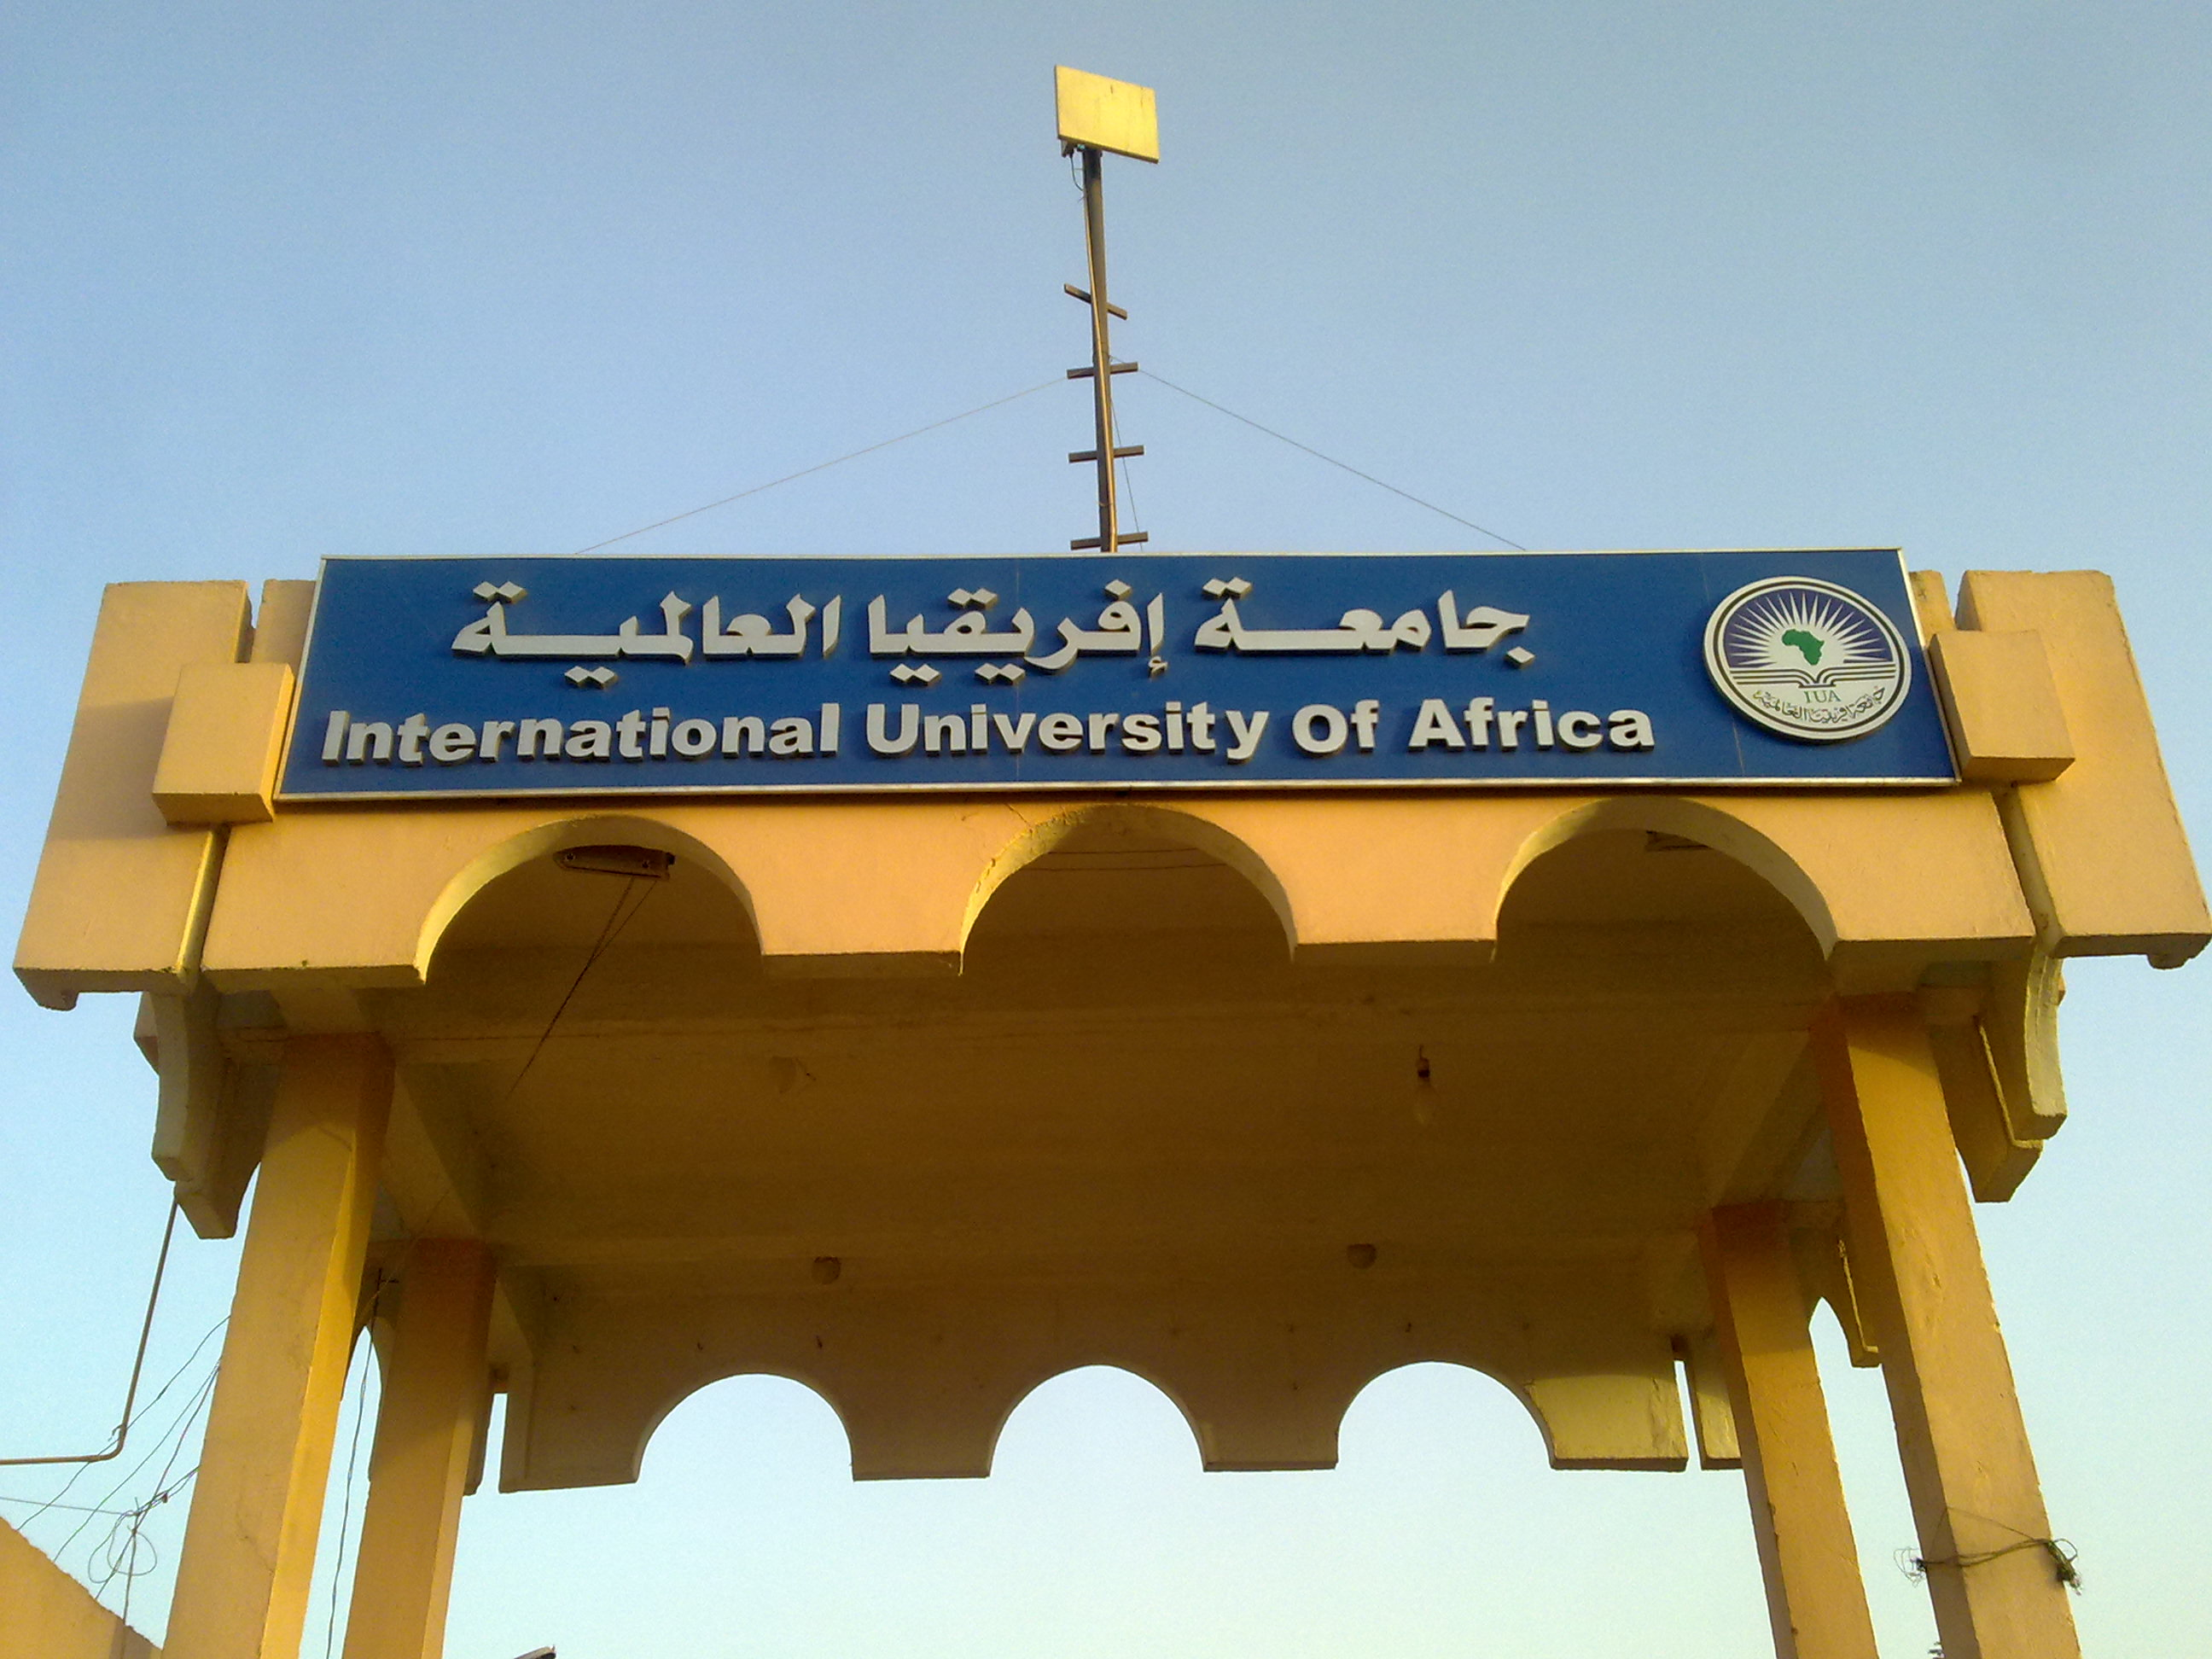 main_gate_of_international_university_of_africa